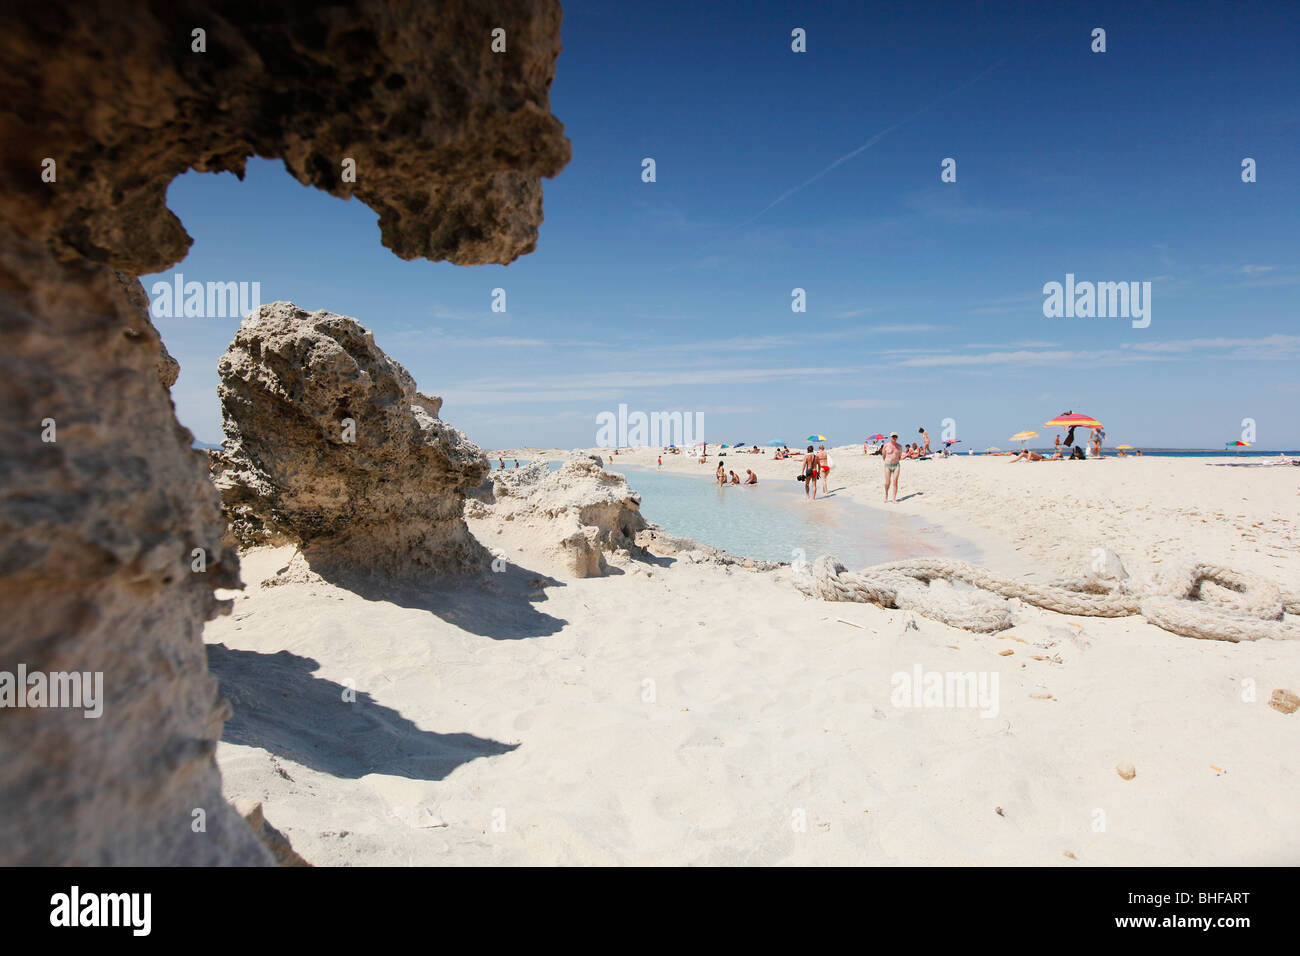 Les Illetes und Llevant beach, Formentera, Balearic Islands, Spain - Stock Image